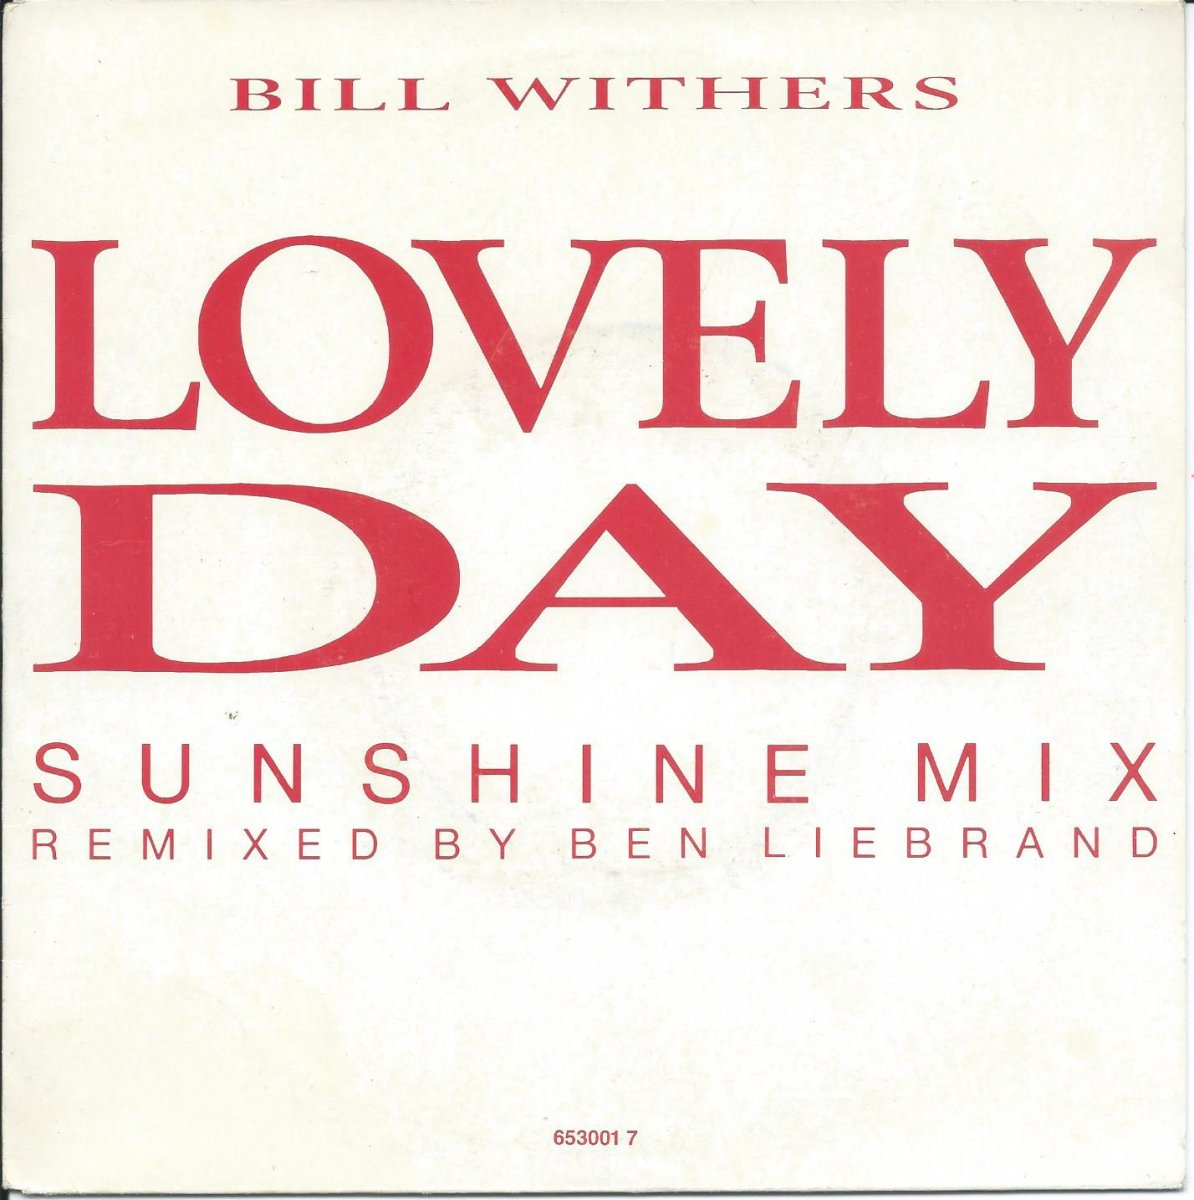 BILL WITHERS ‎/ LOVELY DAY (SUNSHINE MIX) (7